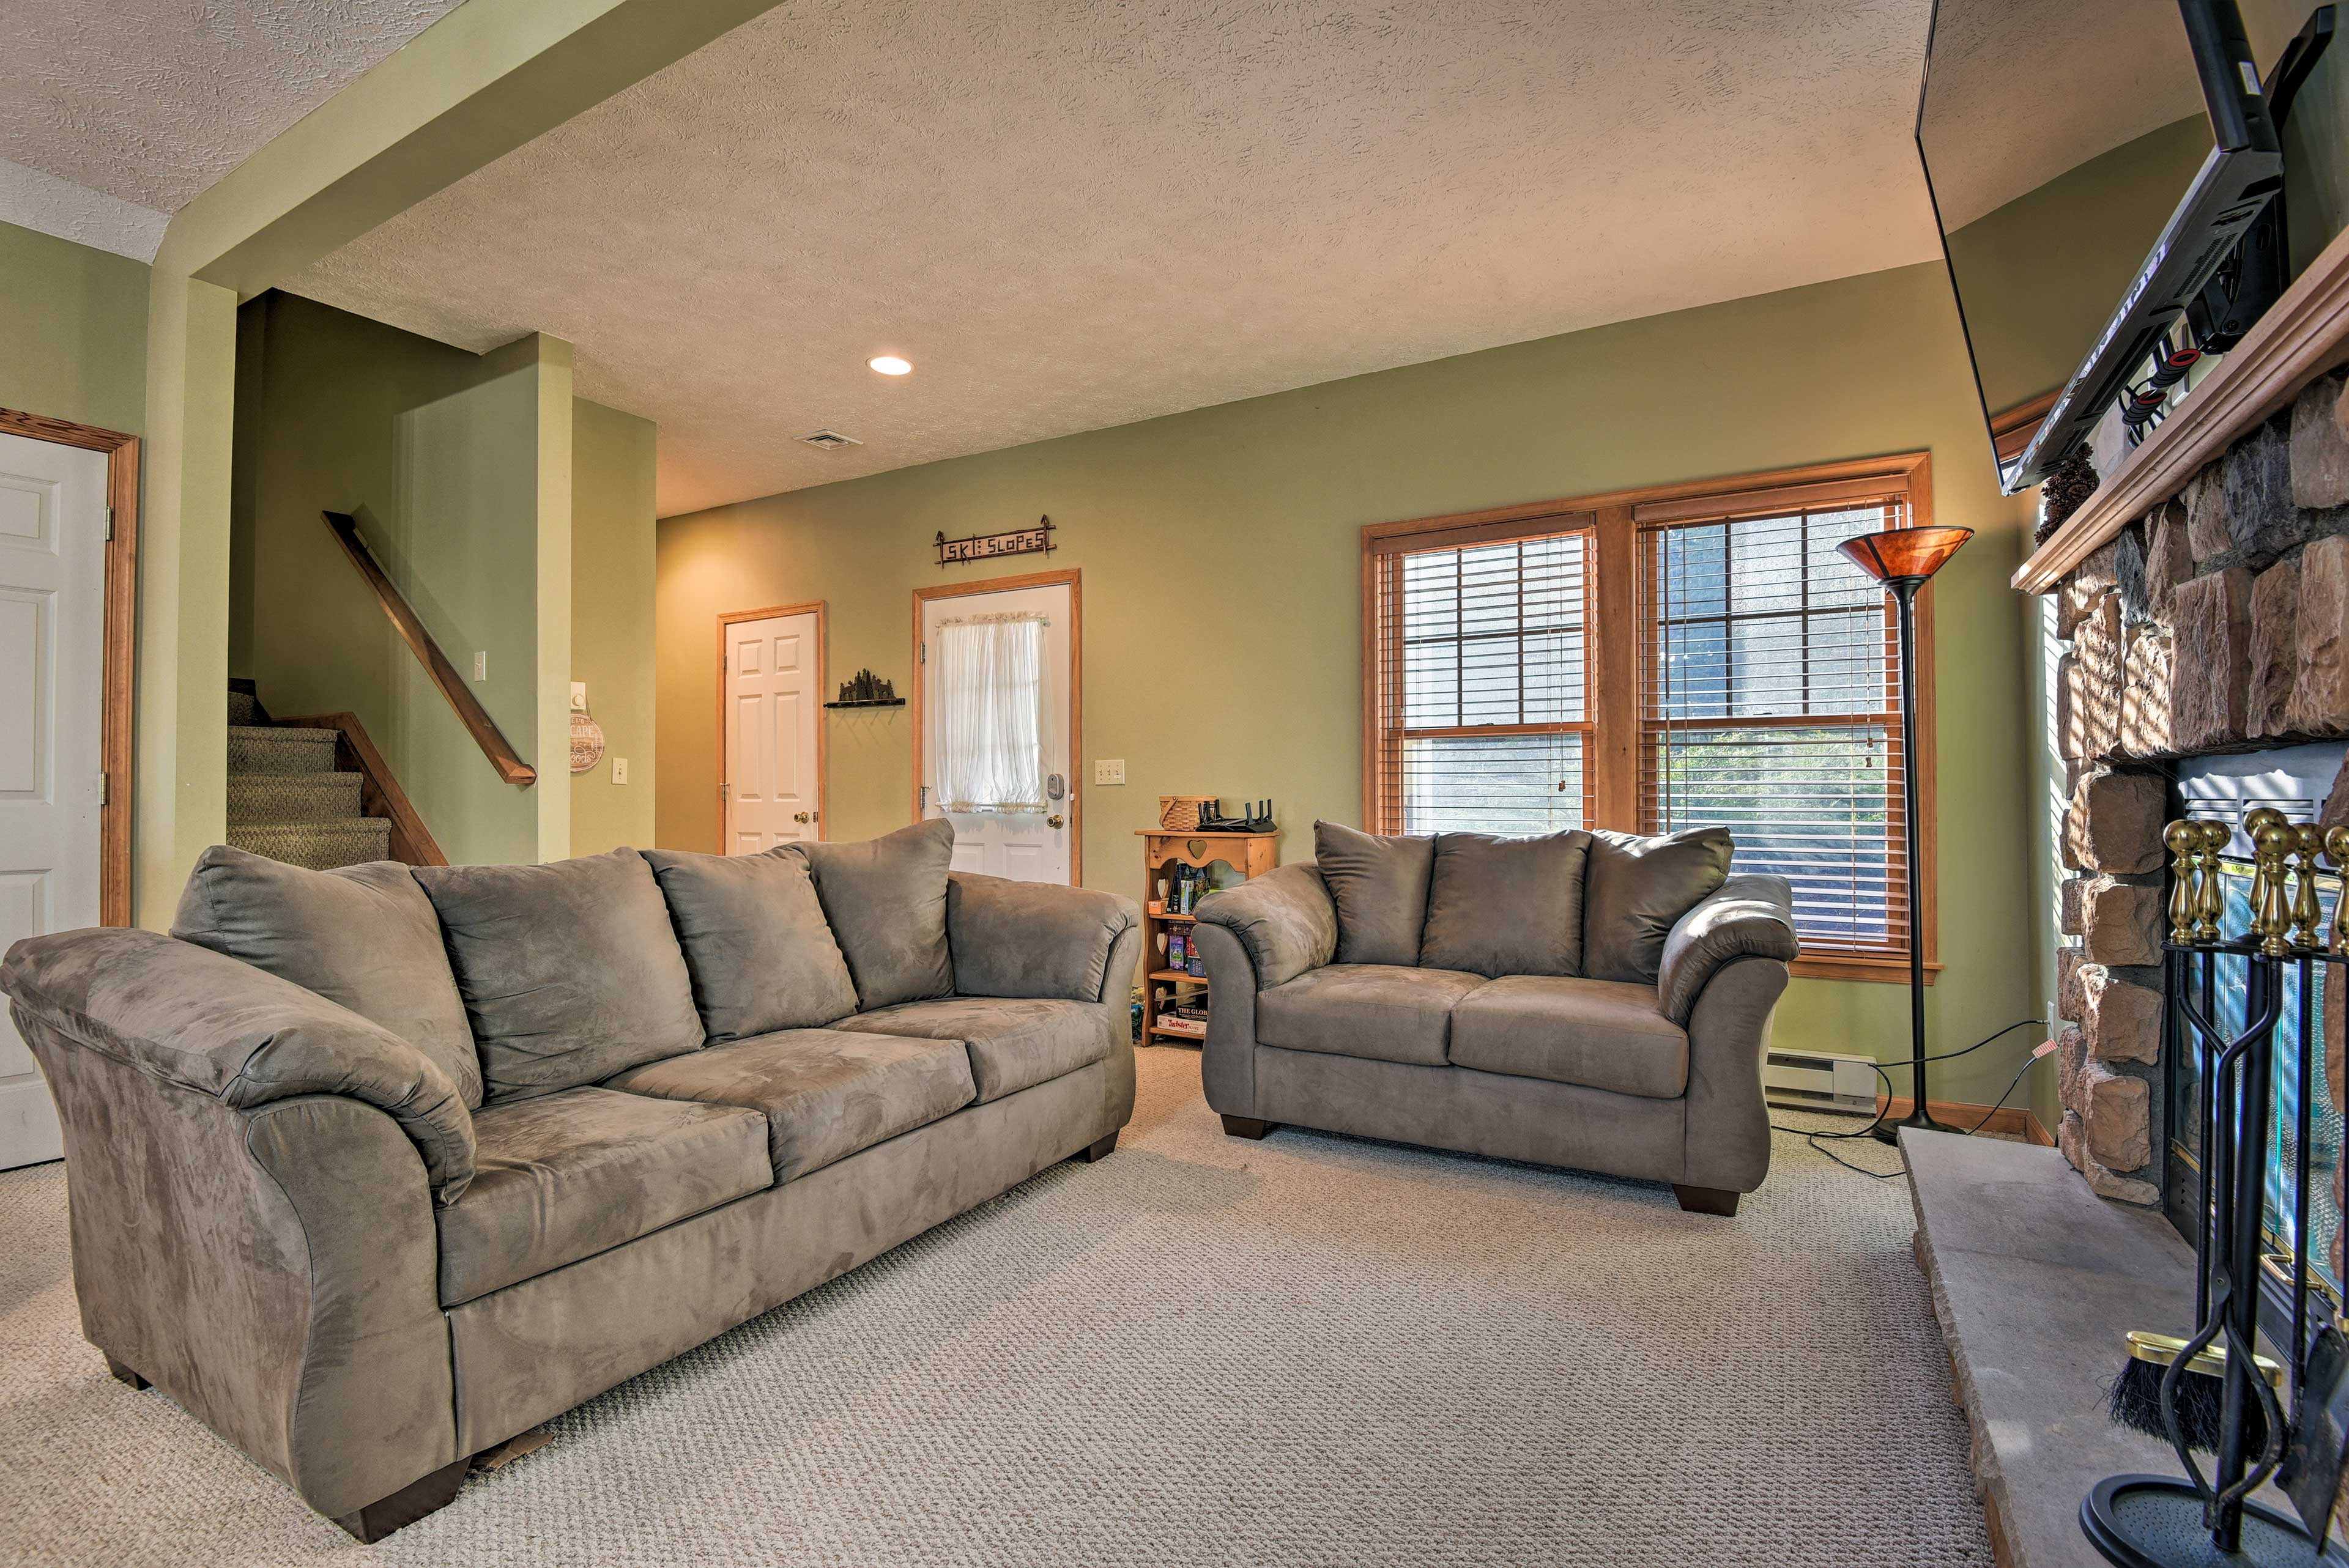 The living room is lined with windows and offers plenty of natural sunlight.